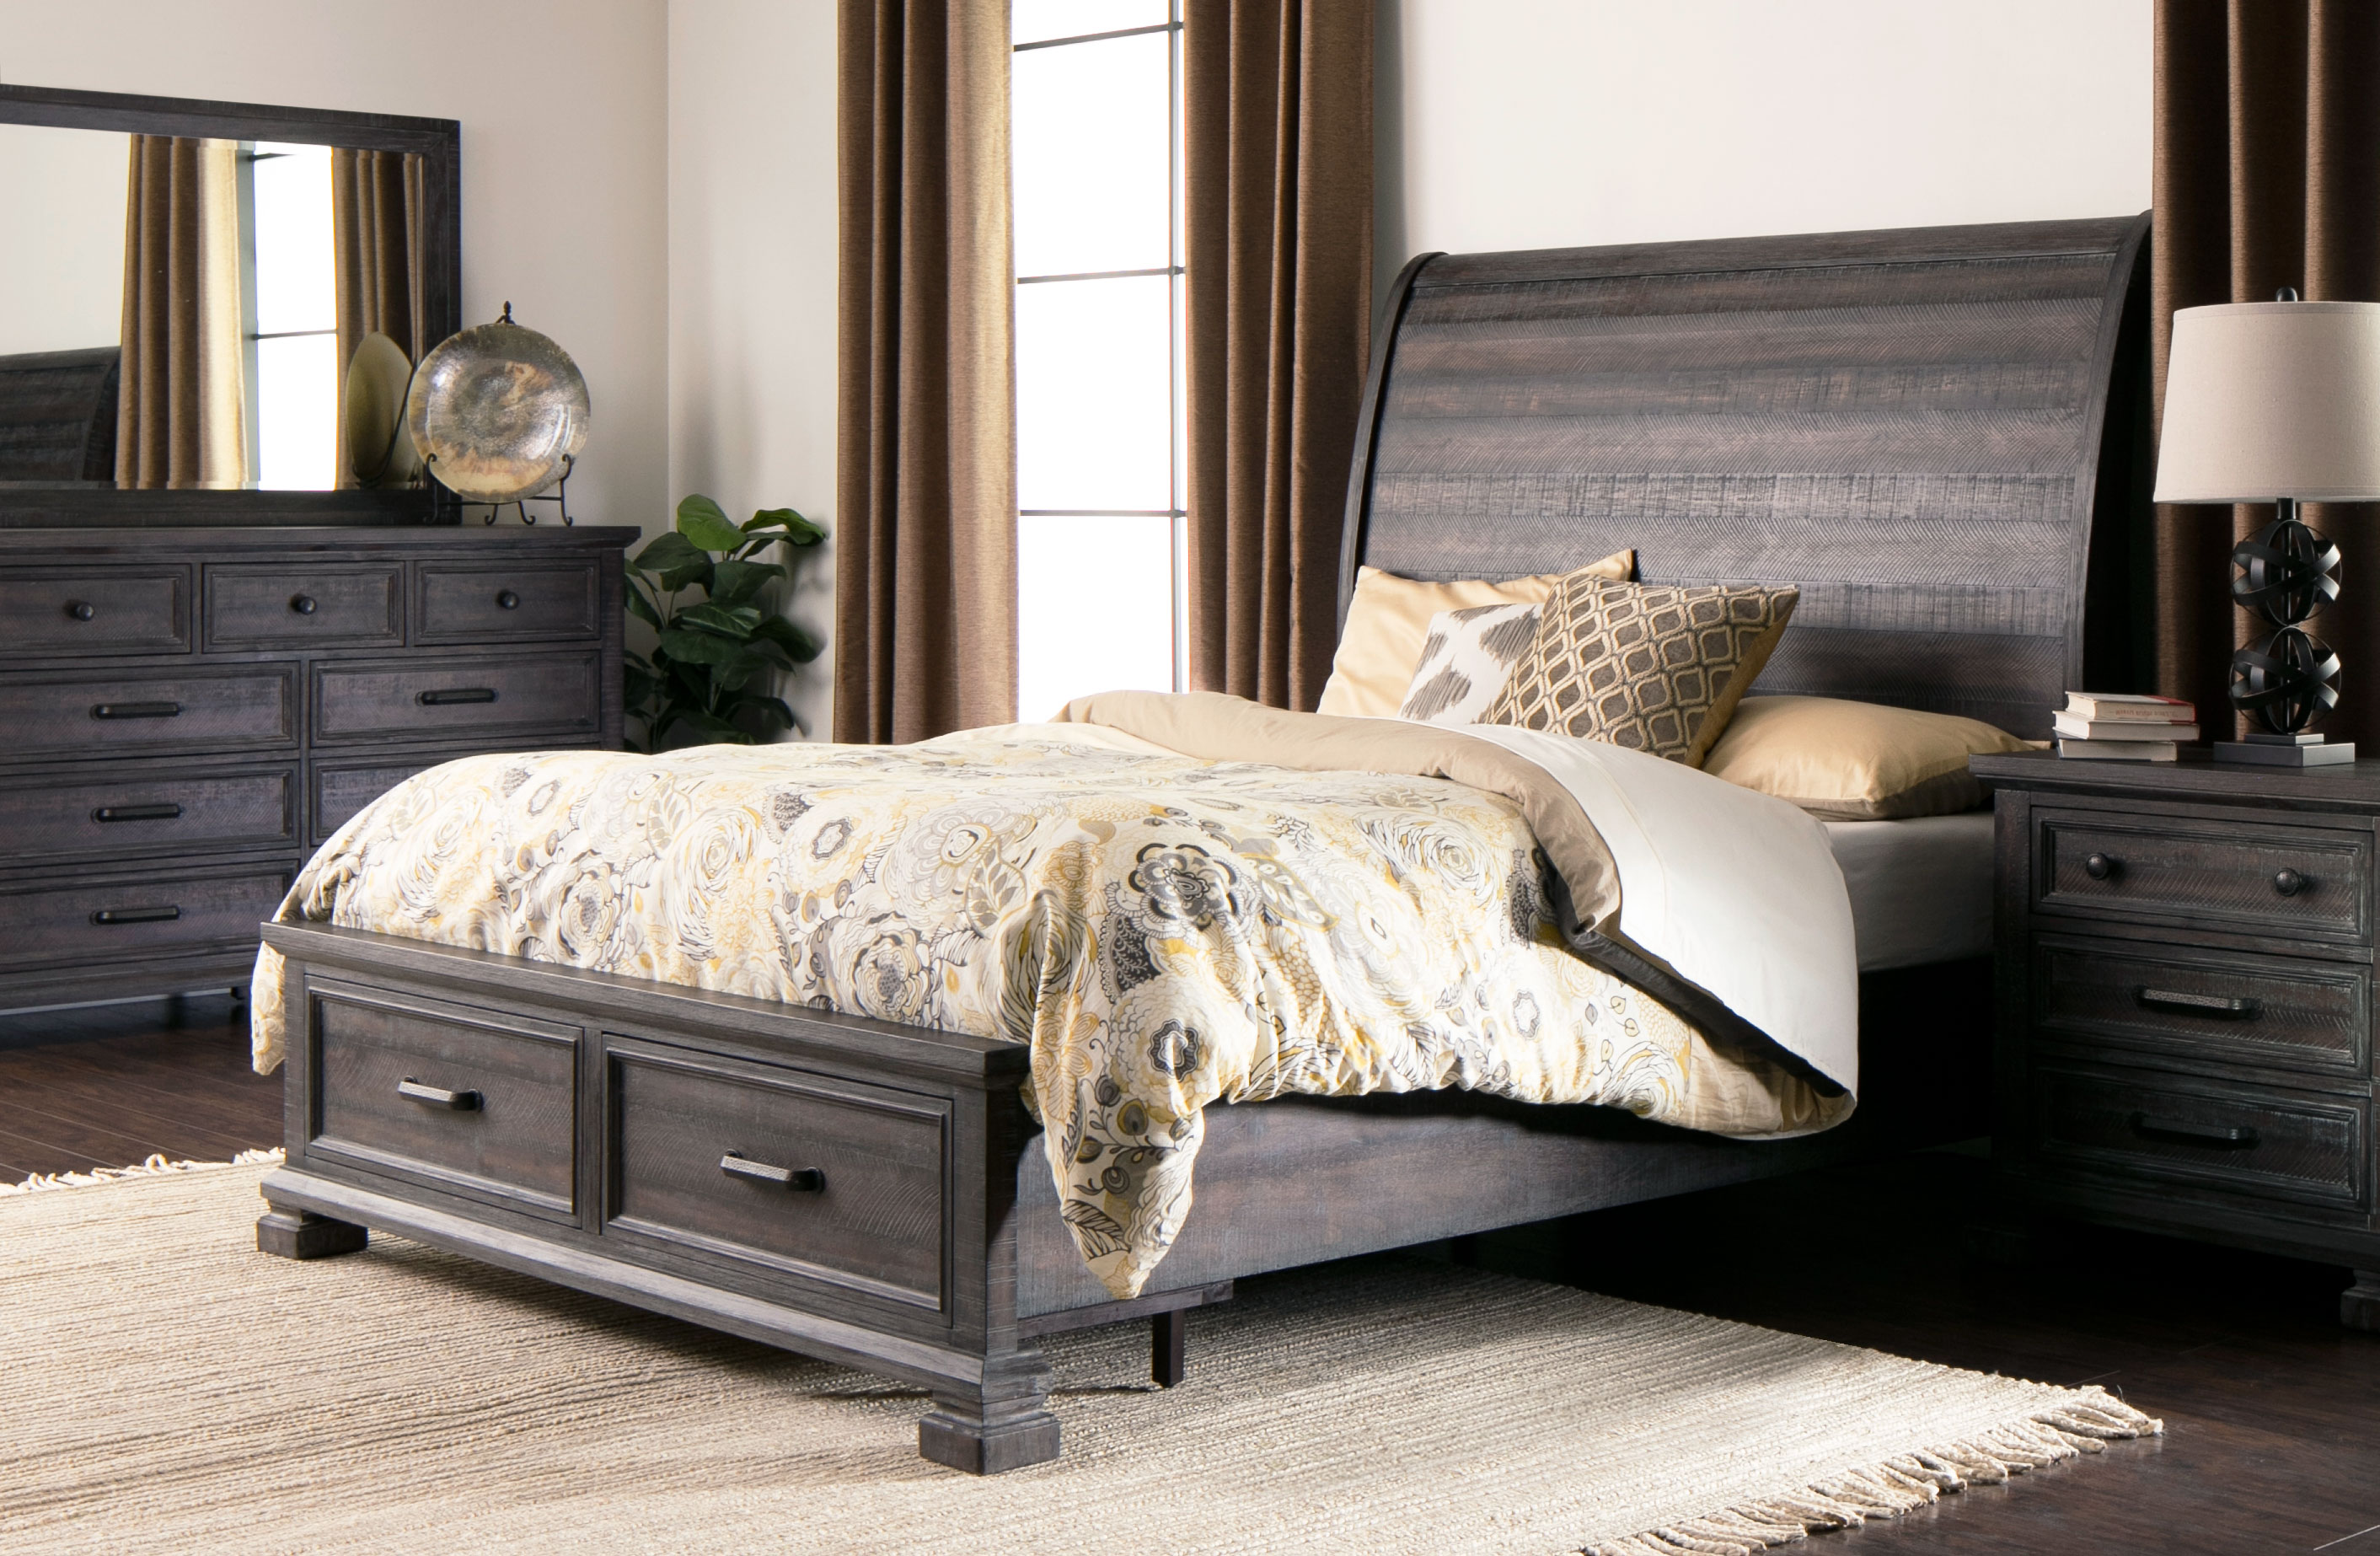 mattress jeromes of design diego amazing san store cupboard furniture ideas jerome gallery house elegant s